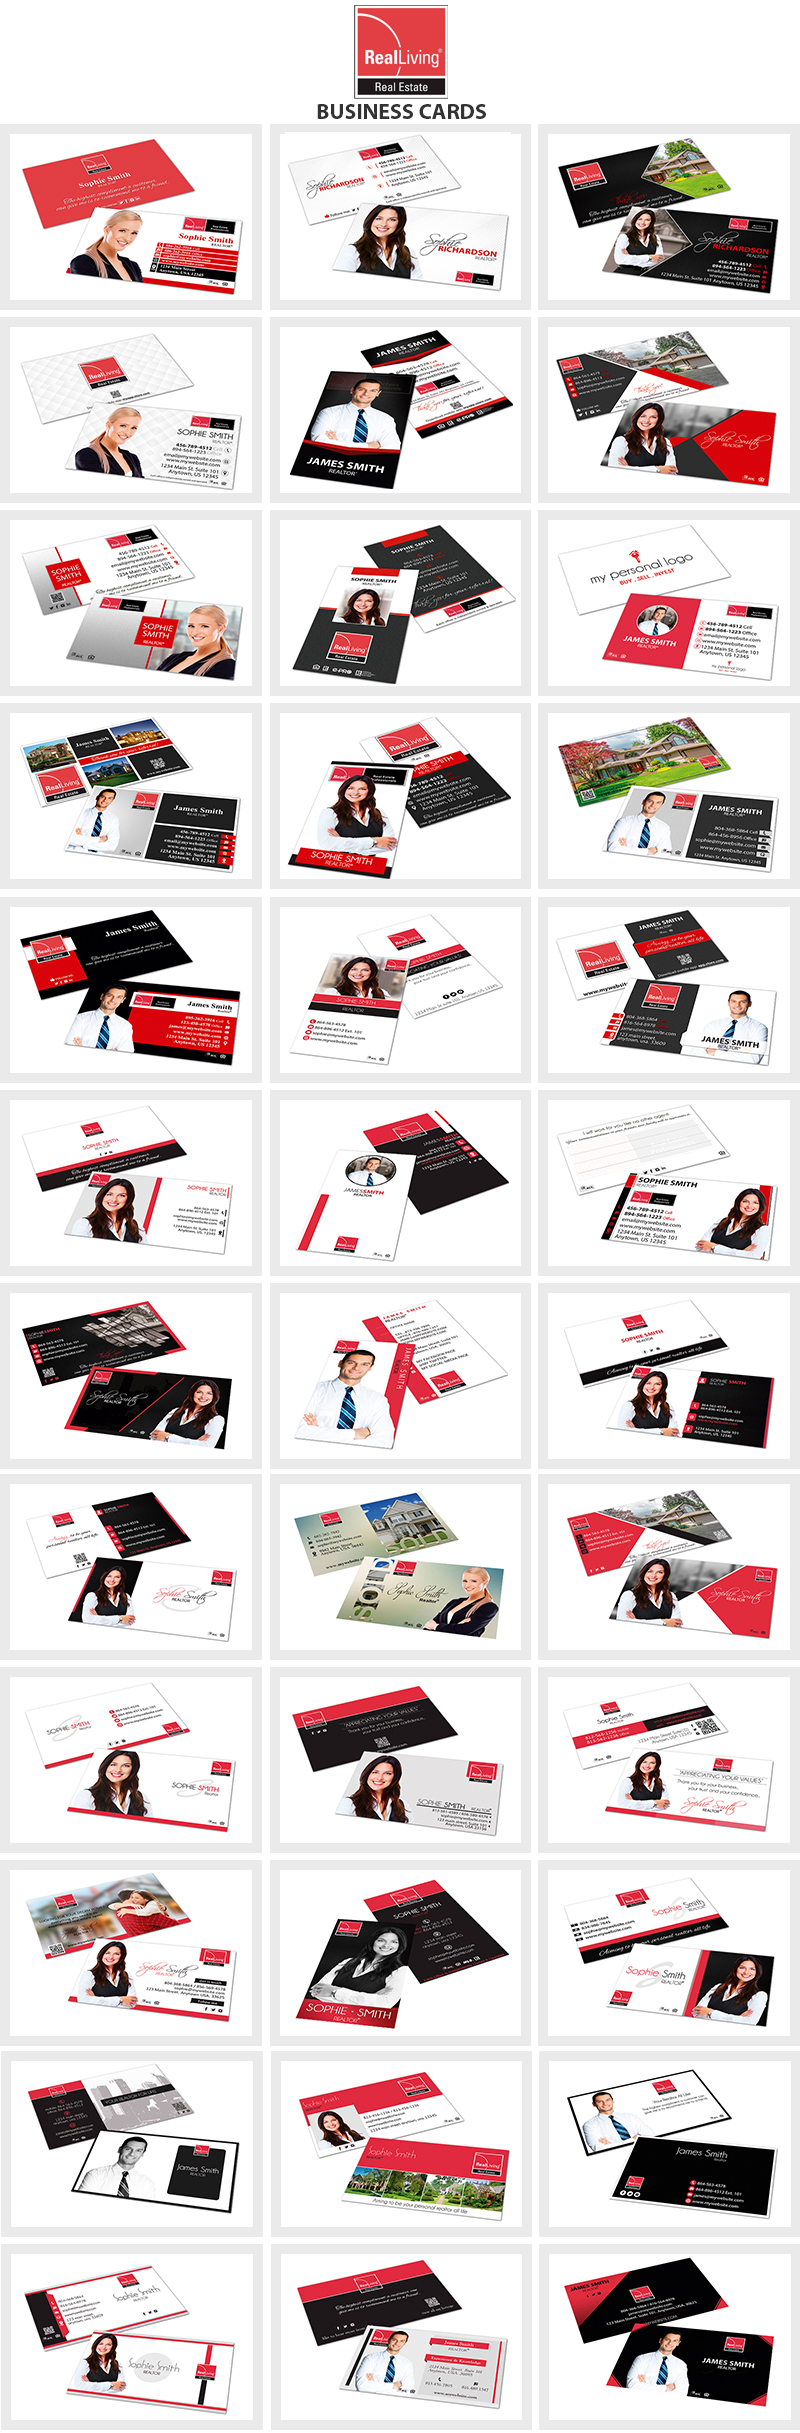 Real Living Real Estate Business Cards, Real Living Realtor Business Cards, Real Living Agent Business Cards, Real Living Broker Business Cards, Real Living Office Business Cards